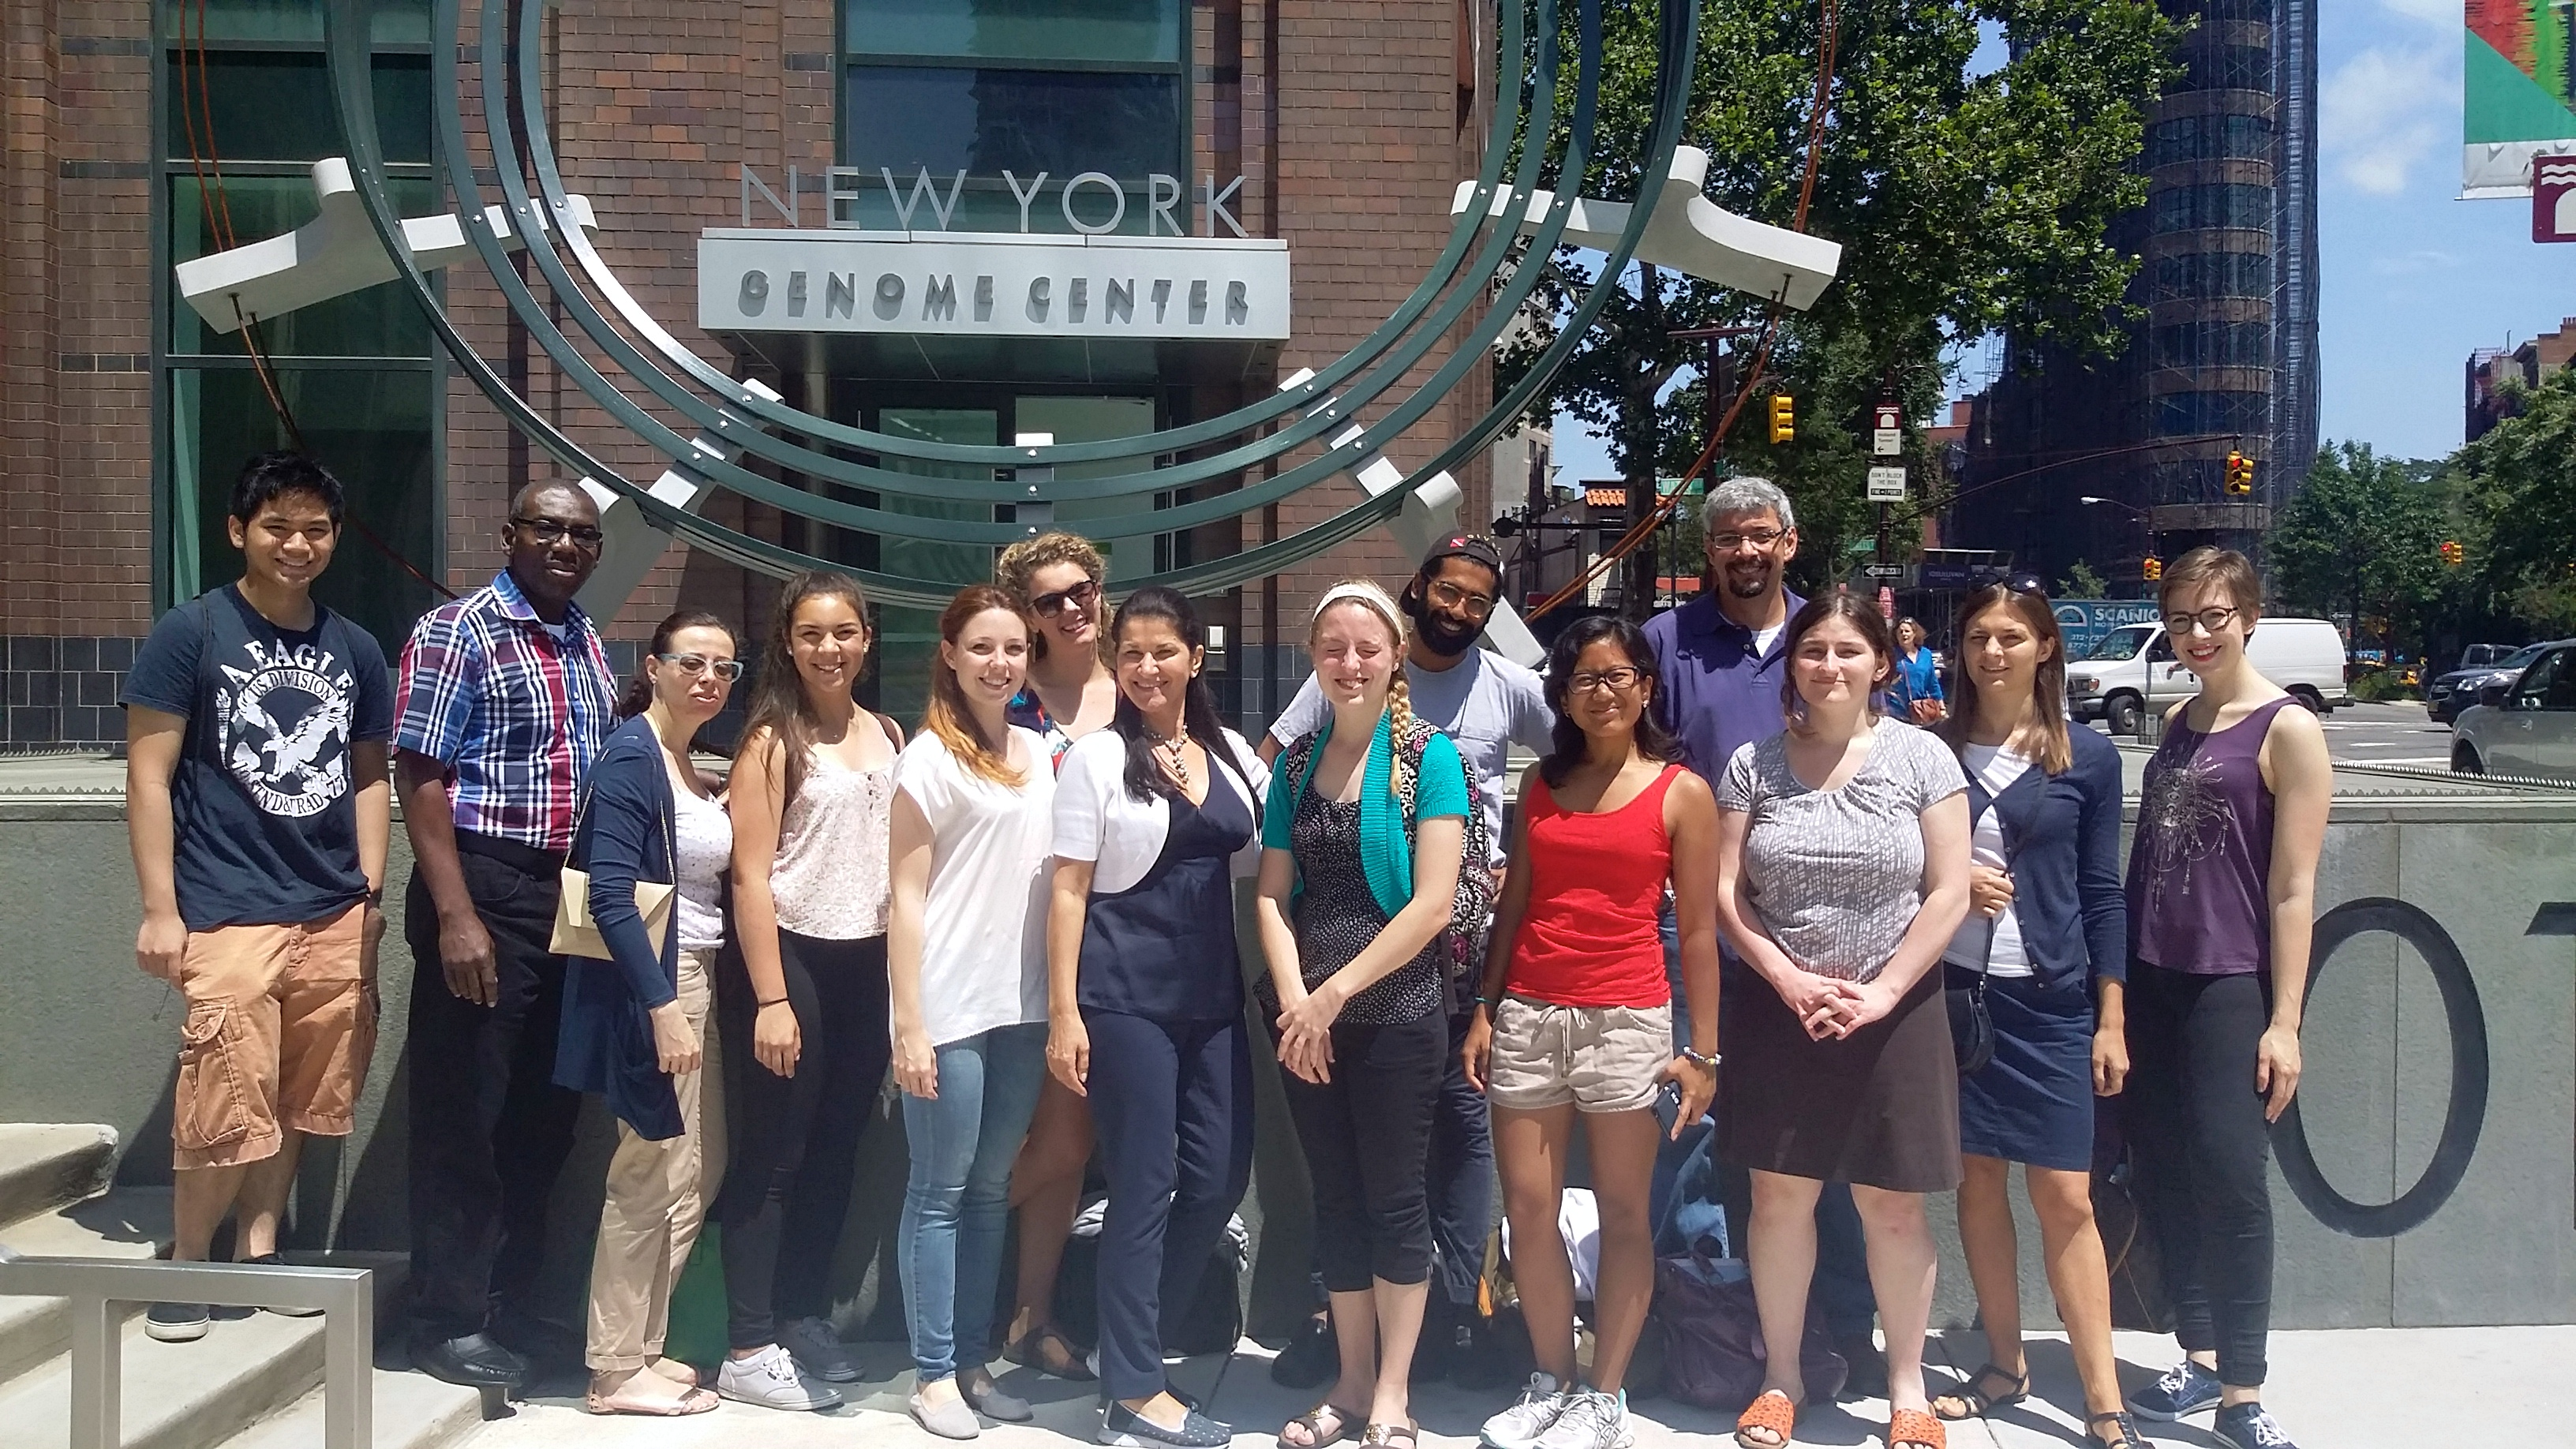 Summer school students during their field trip to the New York Genome Center